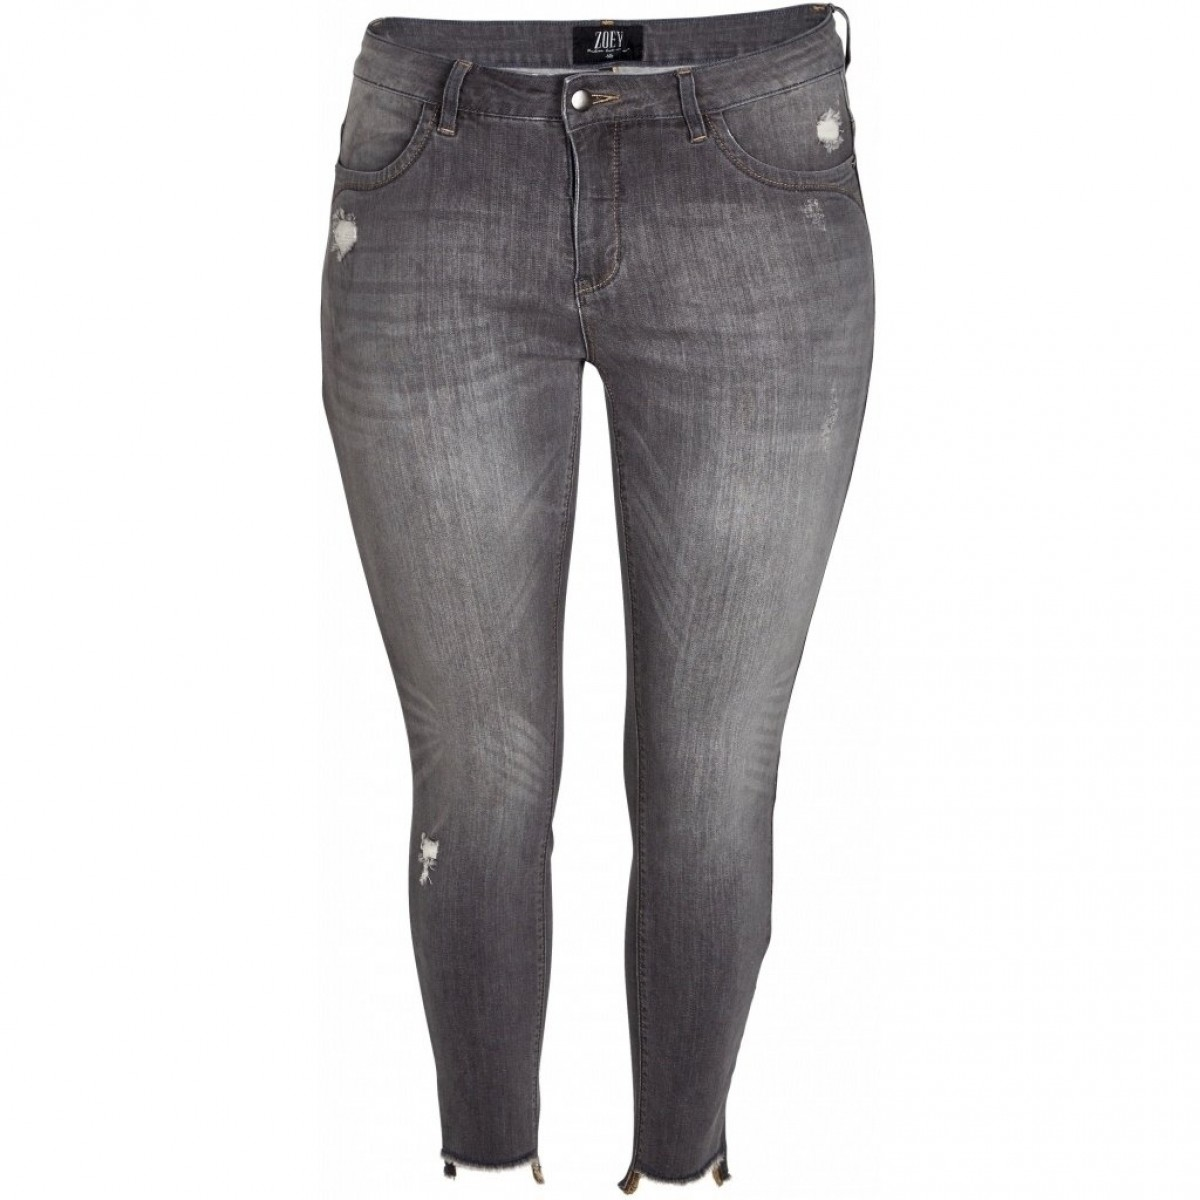 Zoey 192-1816 Jeans